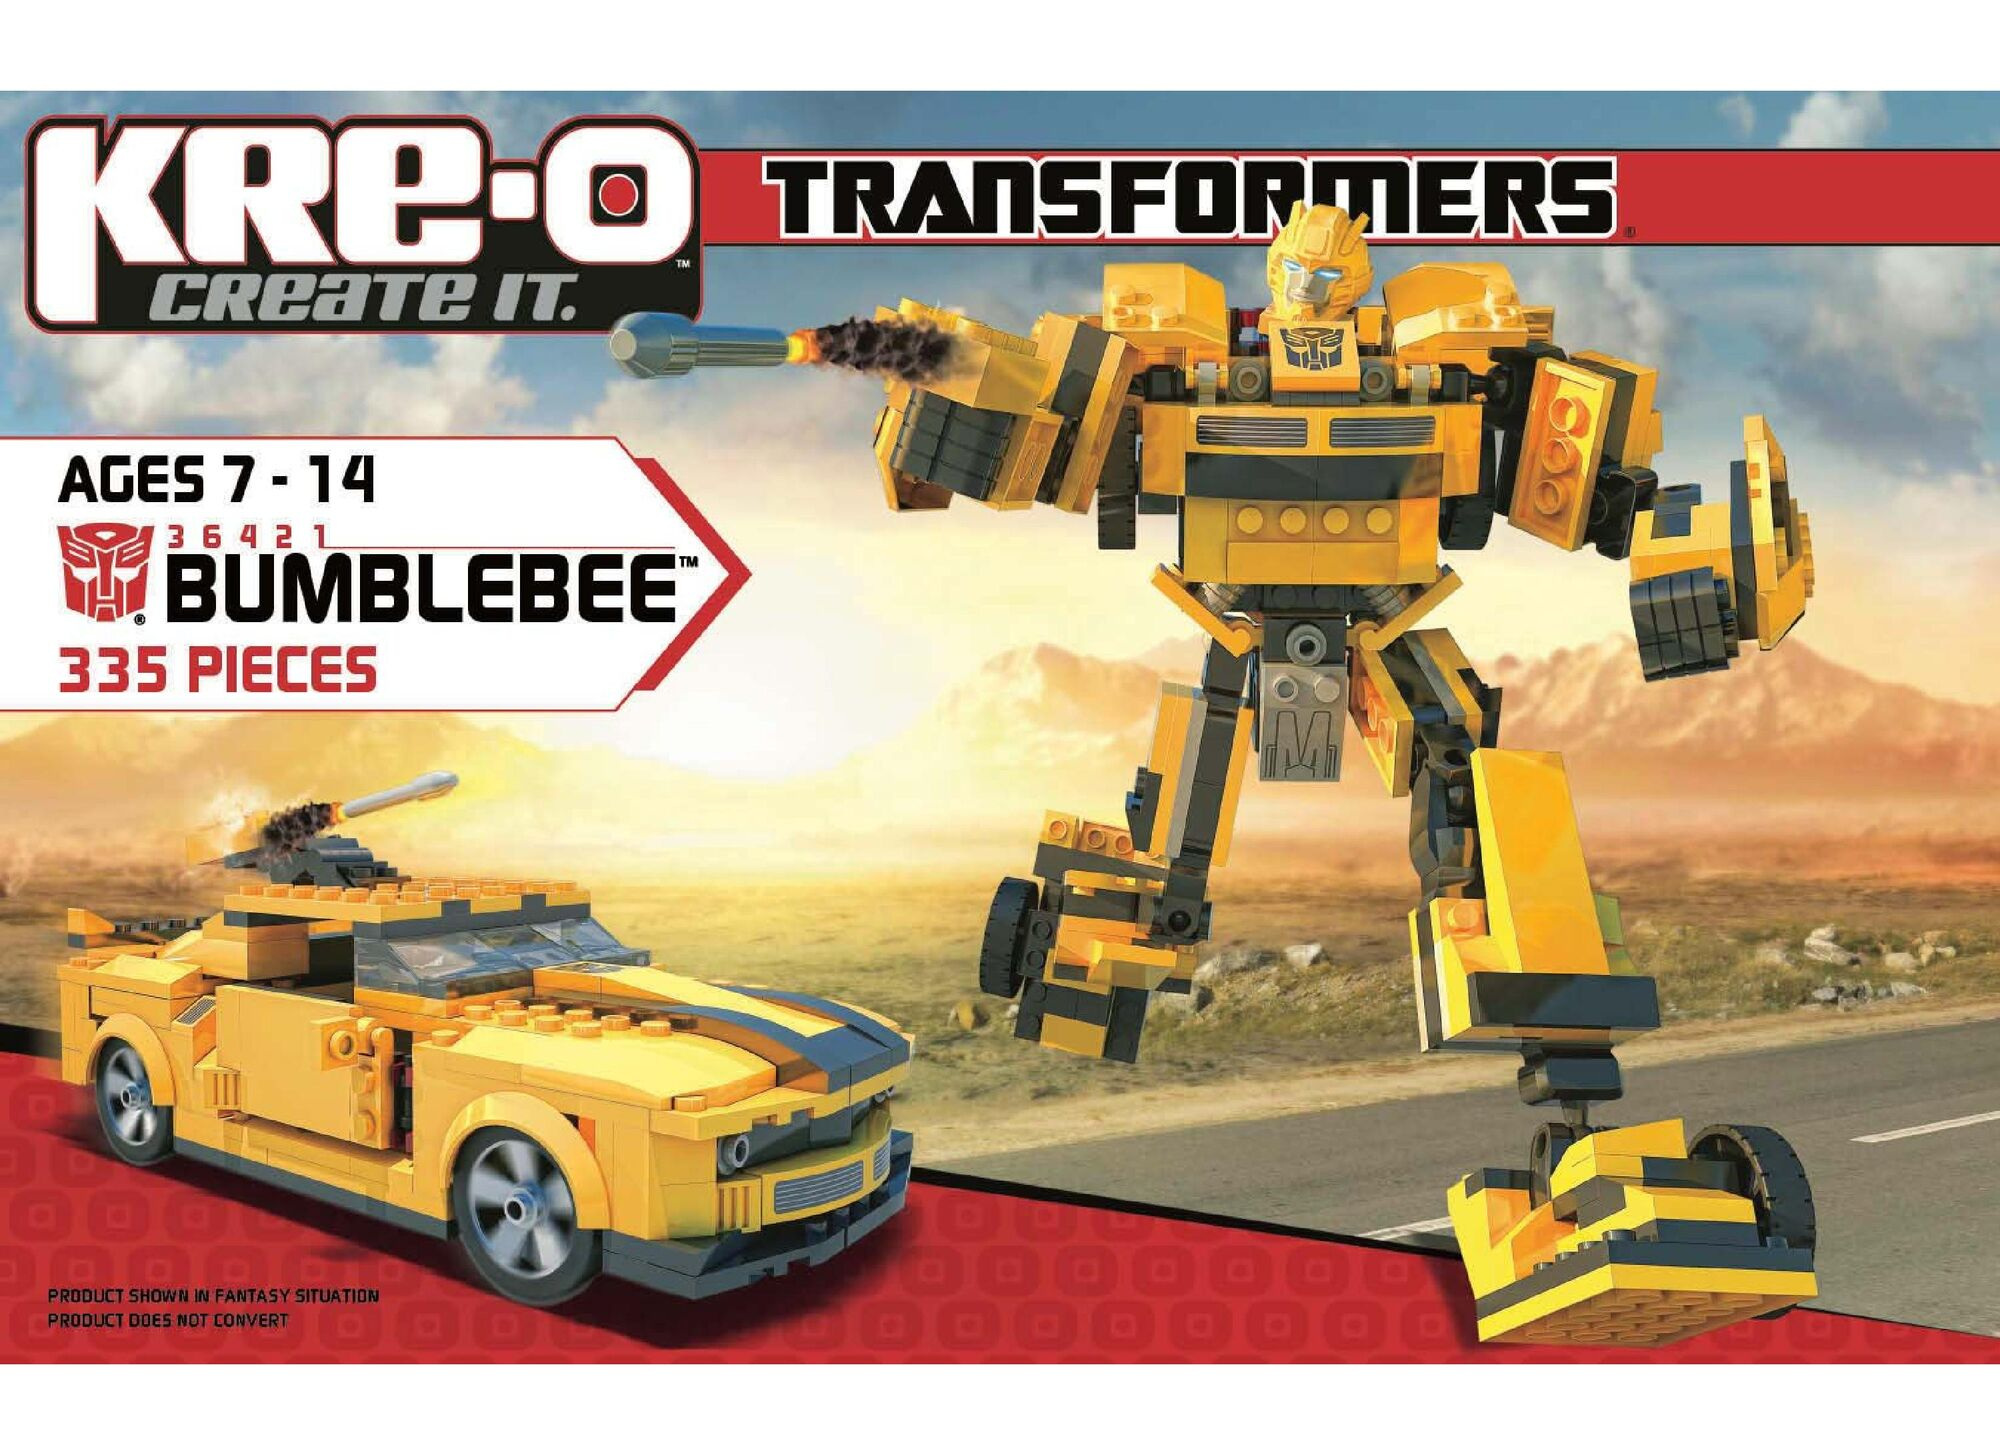 bumblebee bt-z5 instruction manual